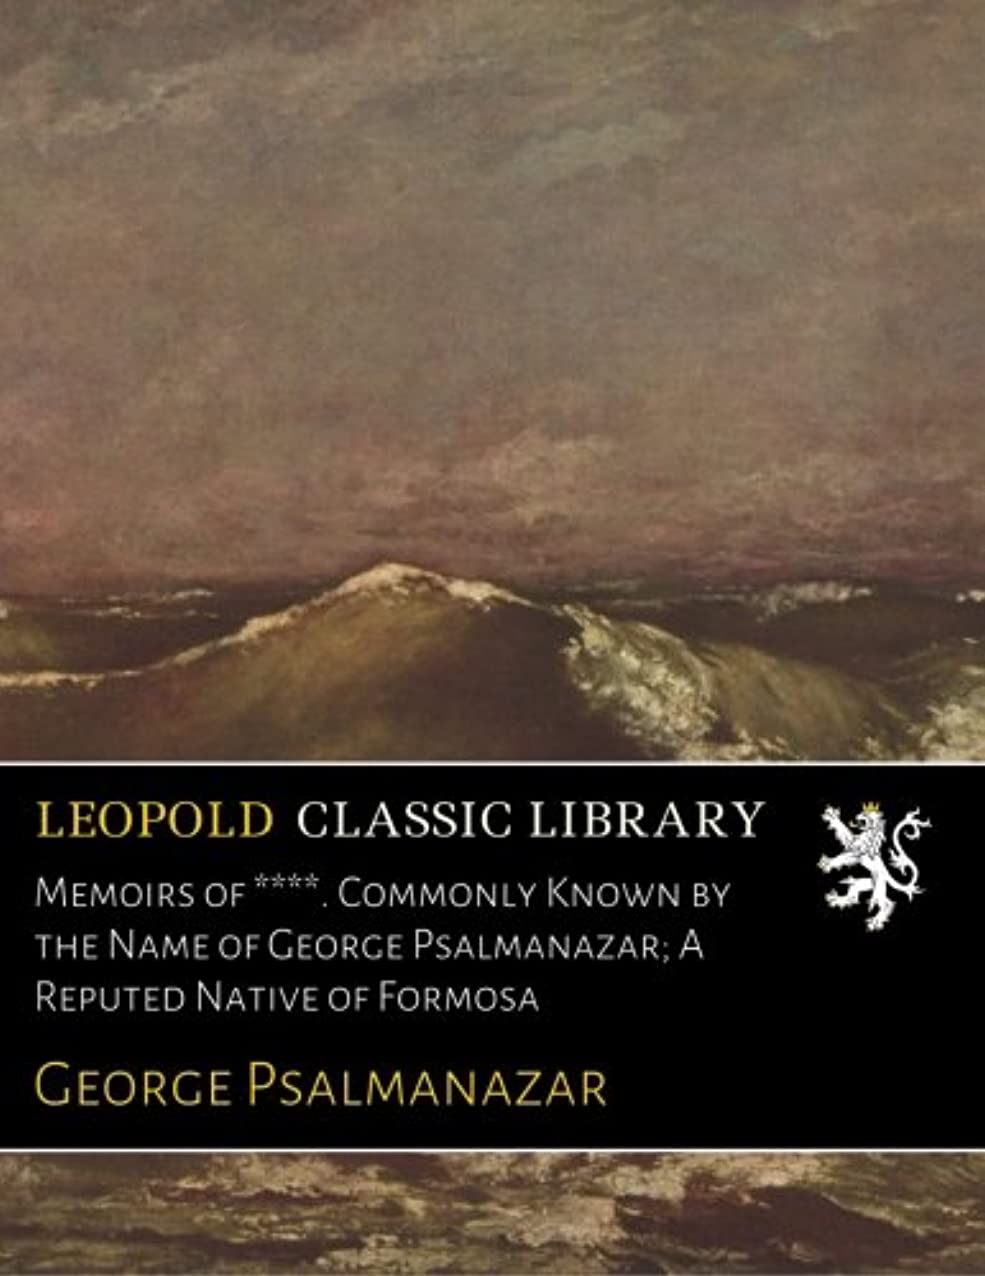 Memoirs of ****. Commonly Known by the Name of George Psalmanazar; A Reputed Native of Formosa